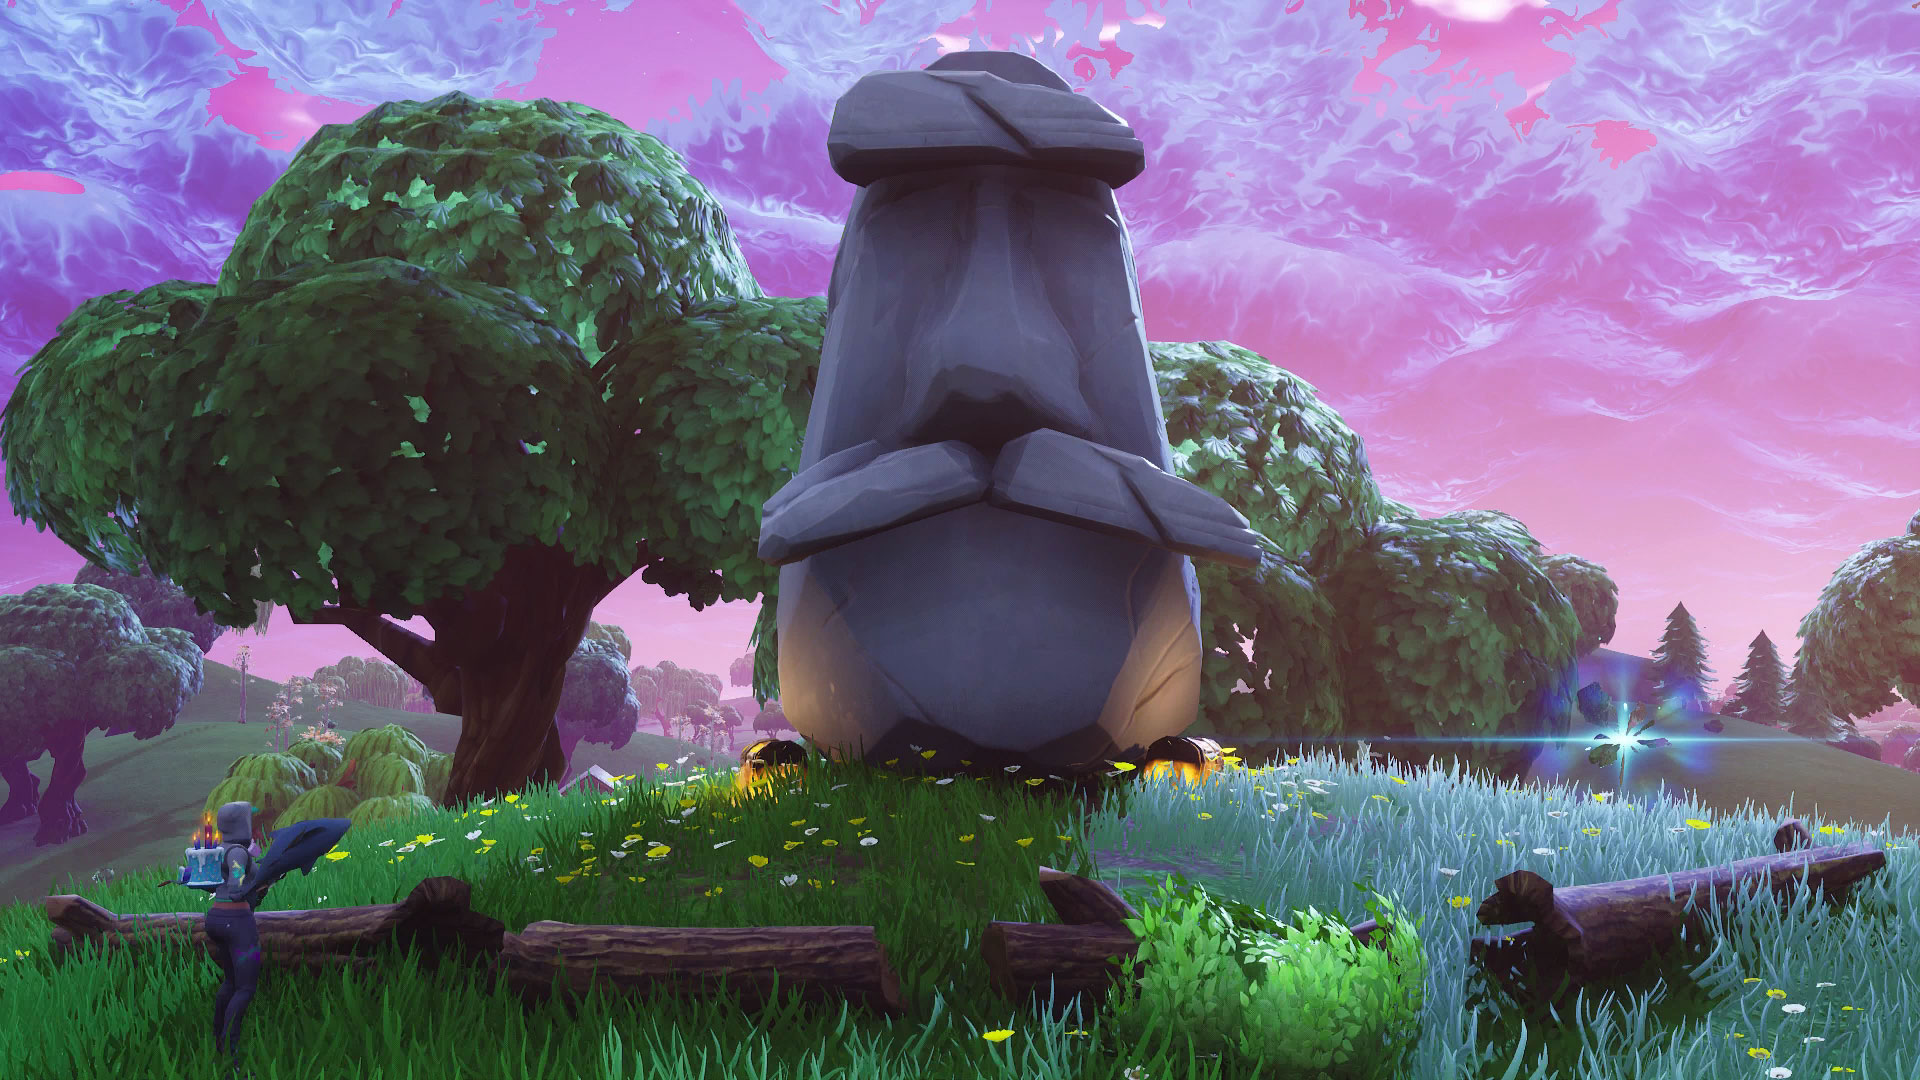 fortnite stone heads locations search where the stone heads are looking and visit different stone heads gamesradar - where is the metal turtle in fortnite map